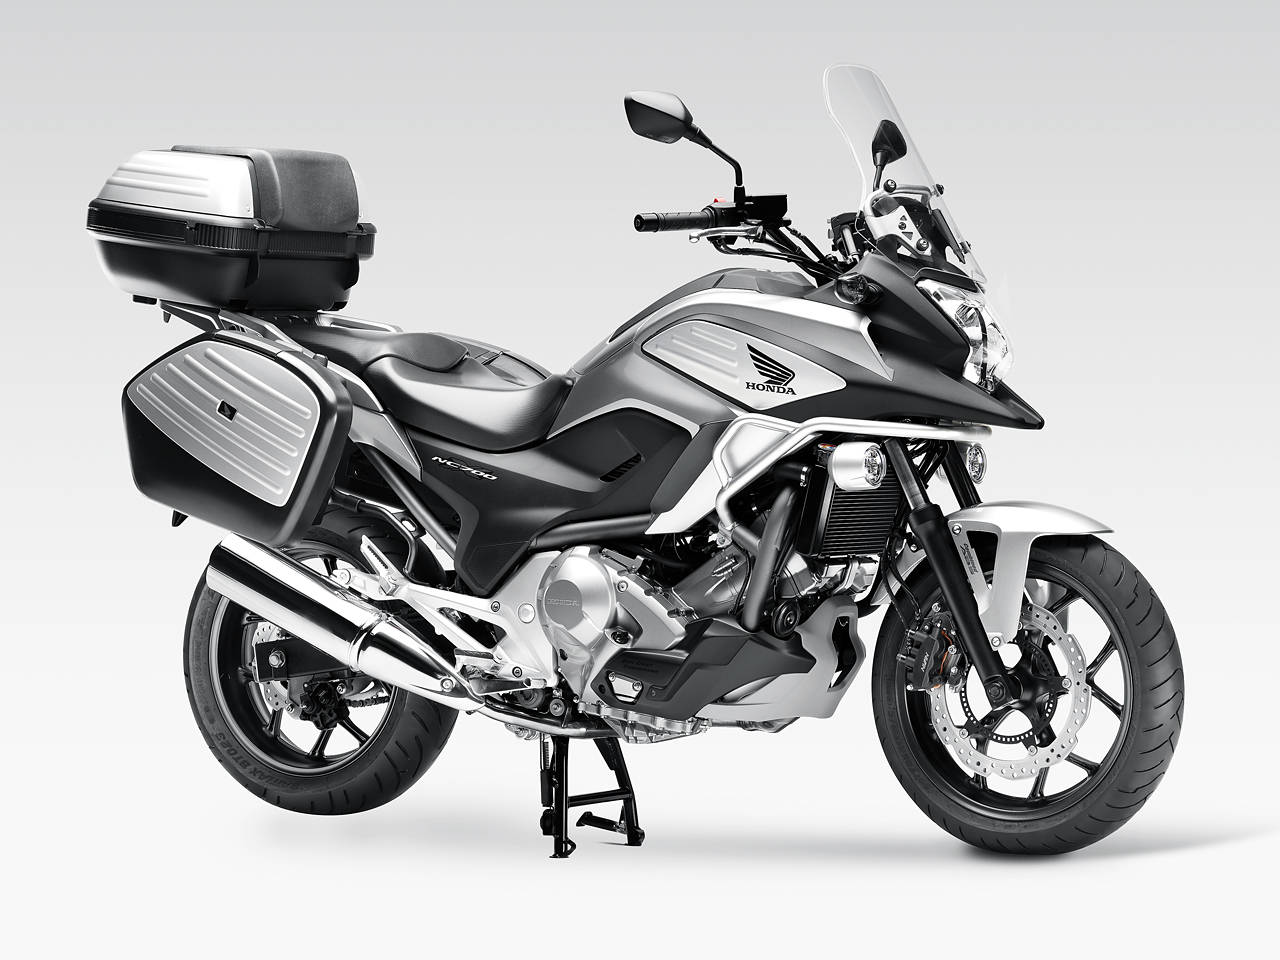 2012 honda nc700x top speed. Black Bedroom Furniture Sets. Home Design Ideas